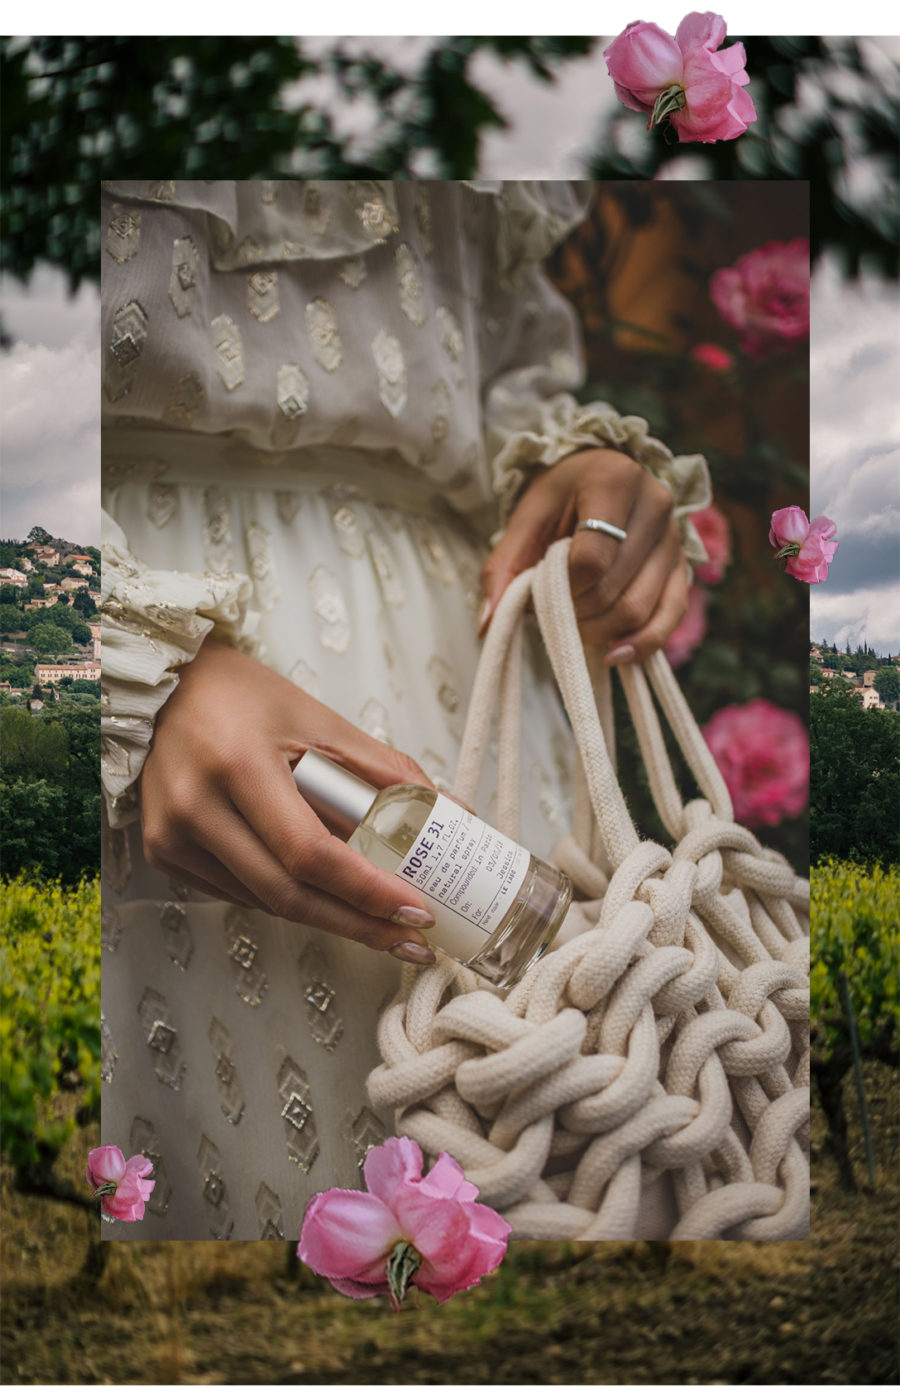 Fairmont x Le Labo Grasse Rose Harvest Experience - metallic pattern dress, Alienina woven bag, grasse rose field, le labo rose field, le labo blogger experience, le labo rose 31 perfume // Notjessfashion.com